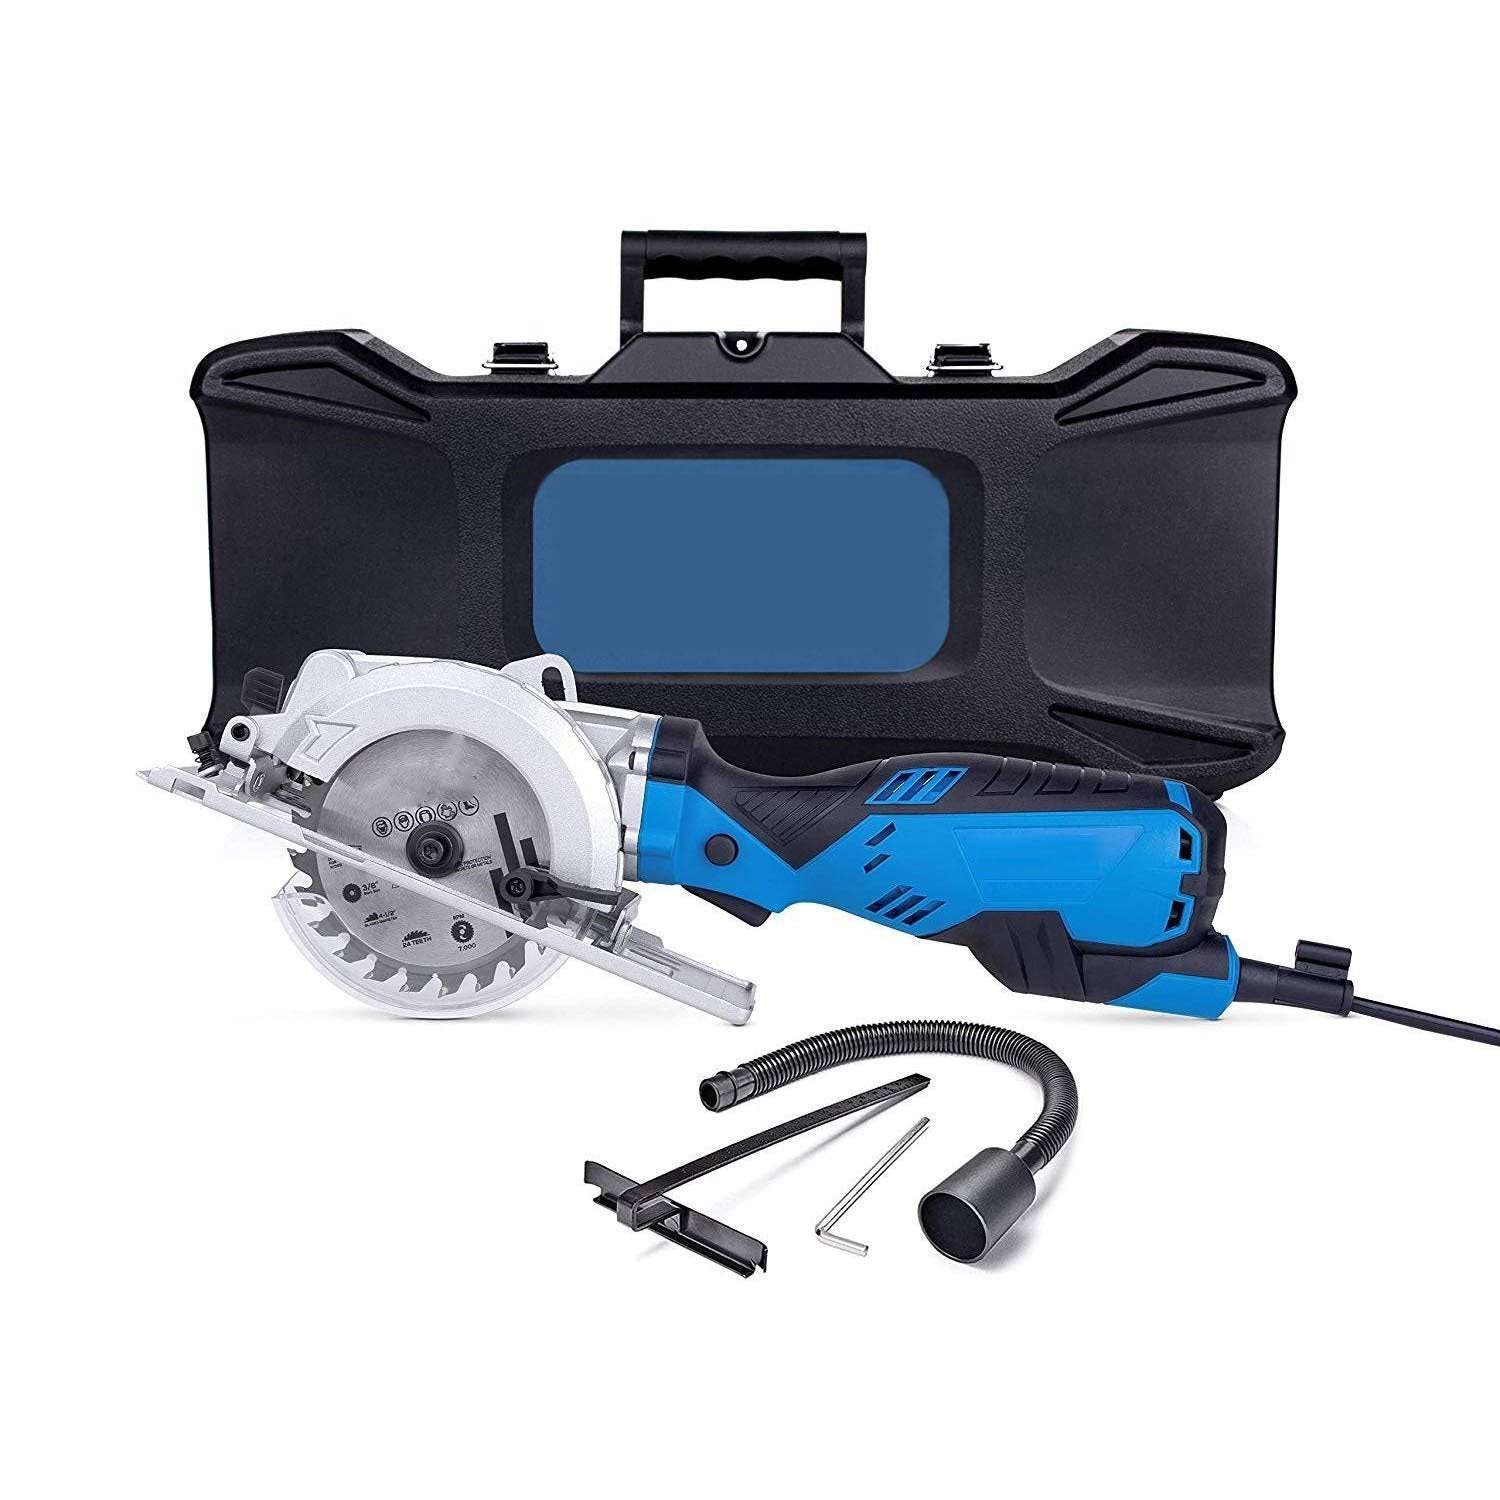 Corded Electric Compact Circular Saw